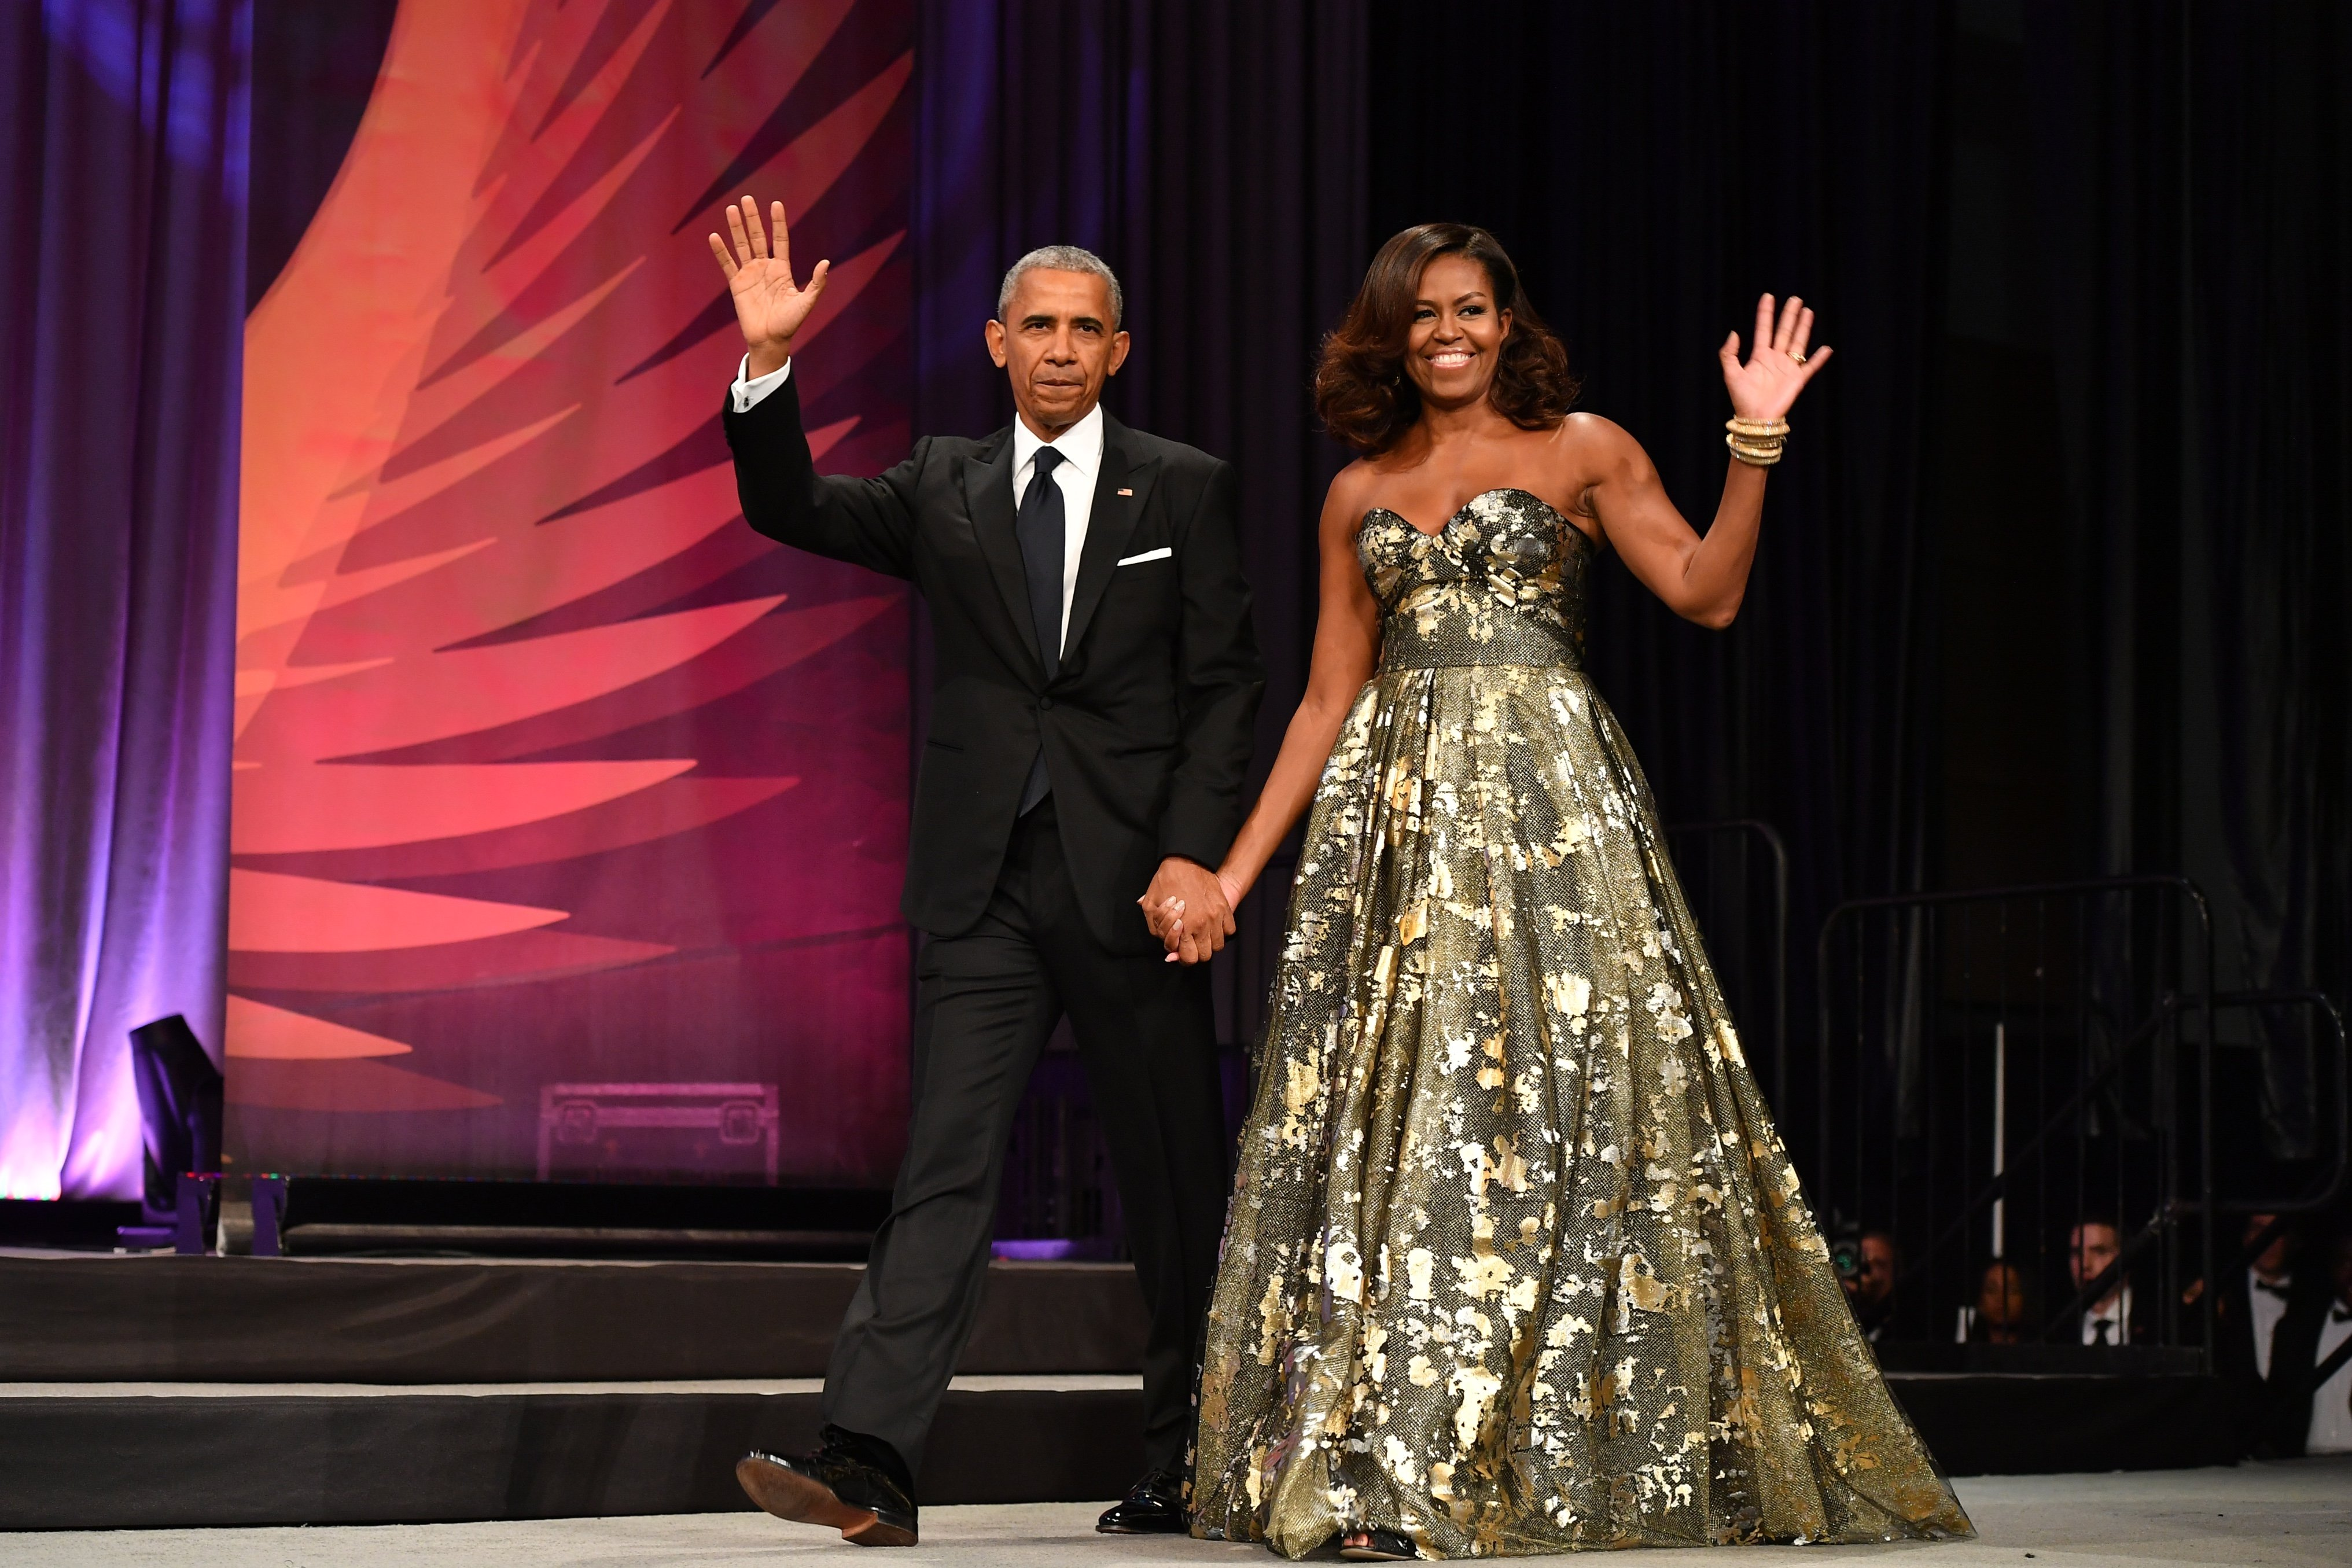 Barack Obama and Michelle Obama arrive at the Phoenix Awards Dinner at Walter E. Washington Convention Center on September 17, 2016 | Photo: GettyImages